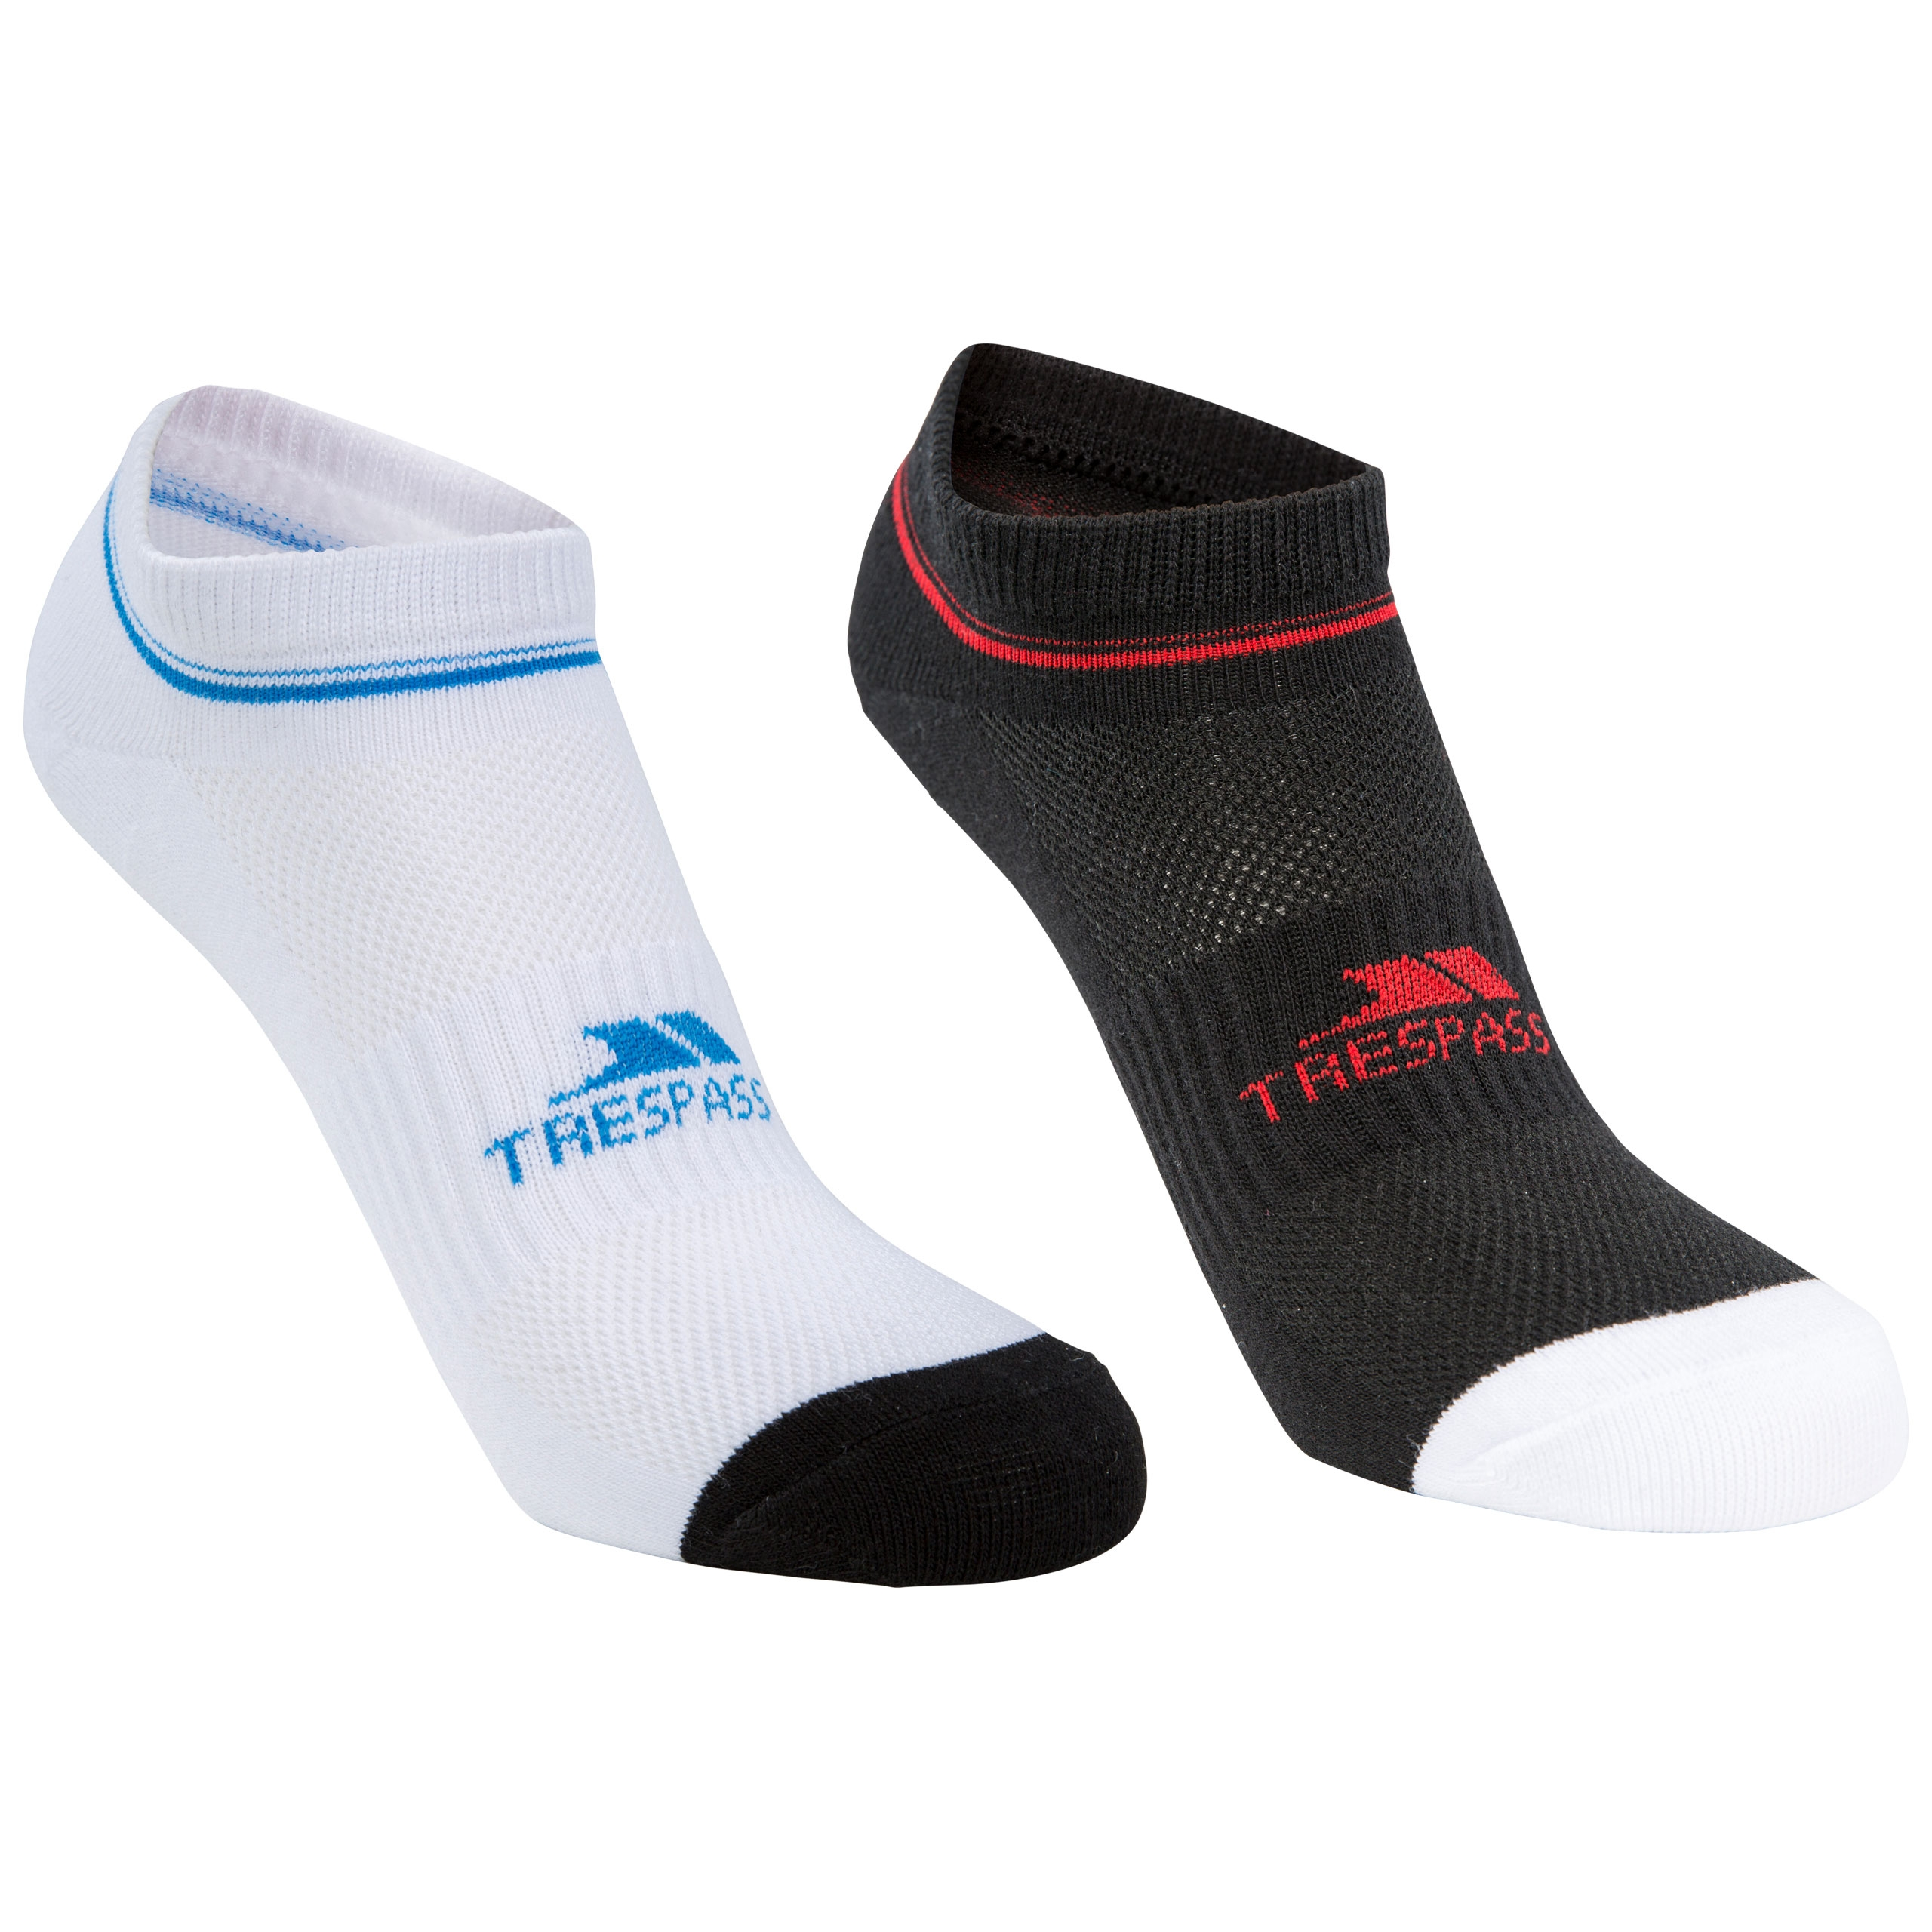 Isolate Unisex Trainer Socks - 2 Pack